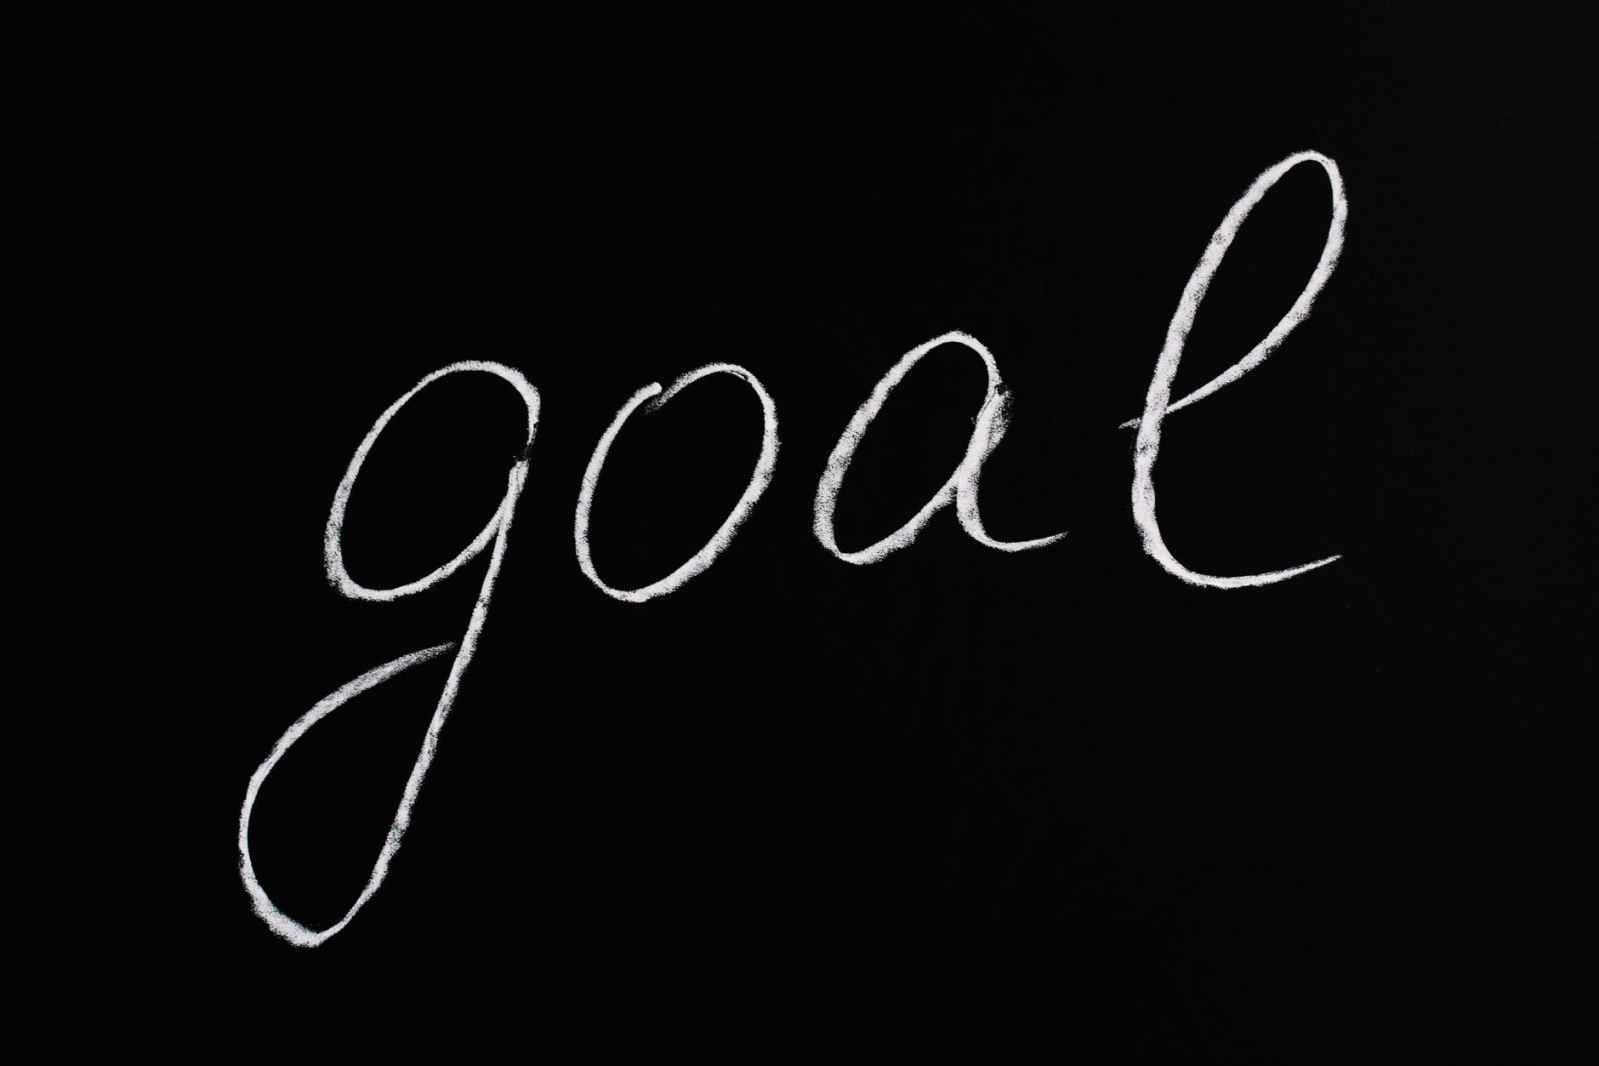 goal lettering text on black background